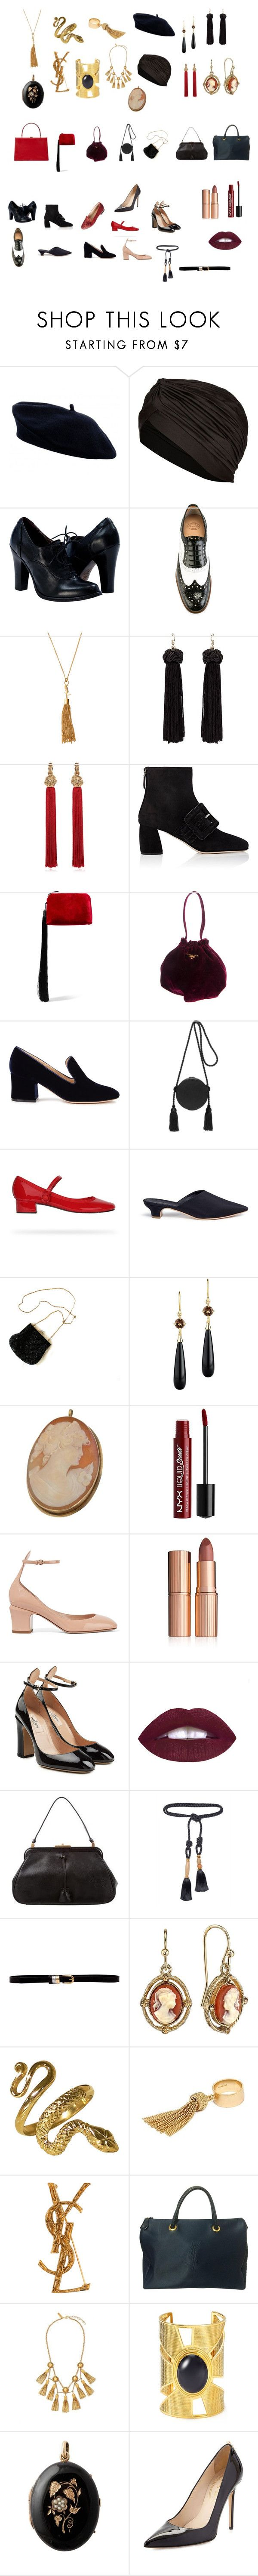 """moi accessories"" by whoisdada on Polyvore featuring moda, Topshop, Church's, Yves Saint Laurent, Miu Miu, The Row, Prada, Gianvito Rossi, Hillier Bartley e Mansur Gavriel"